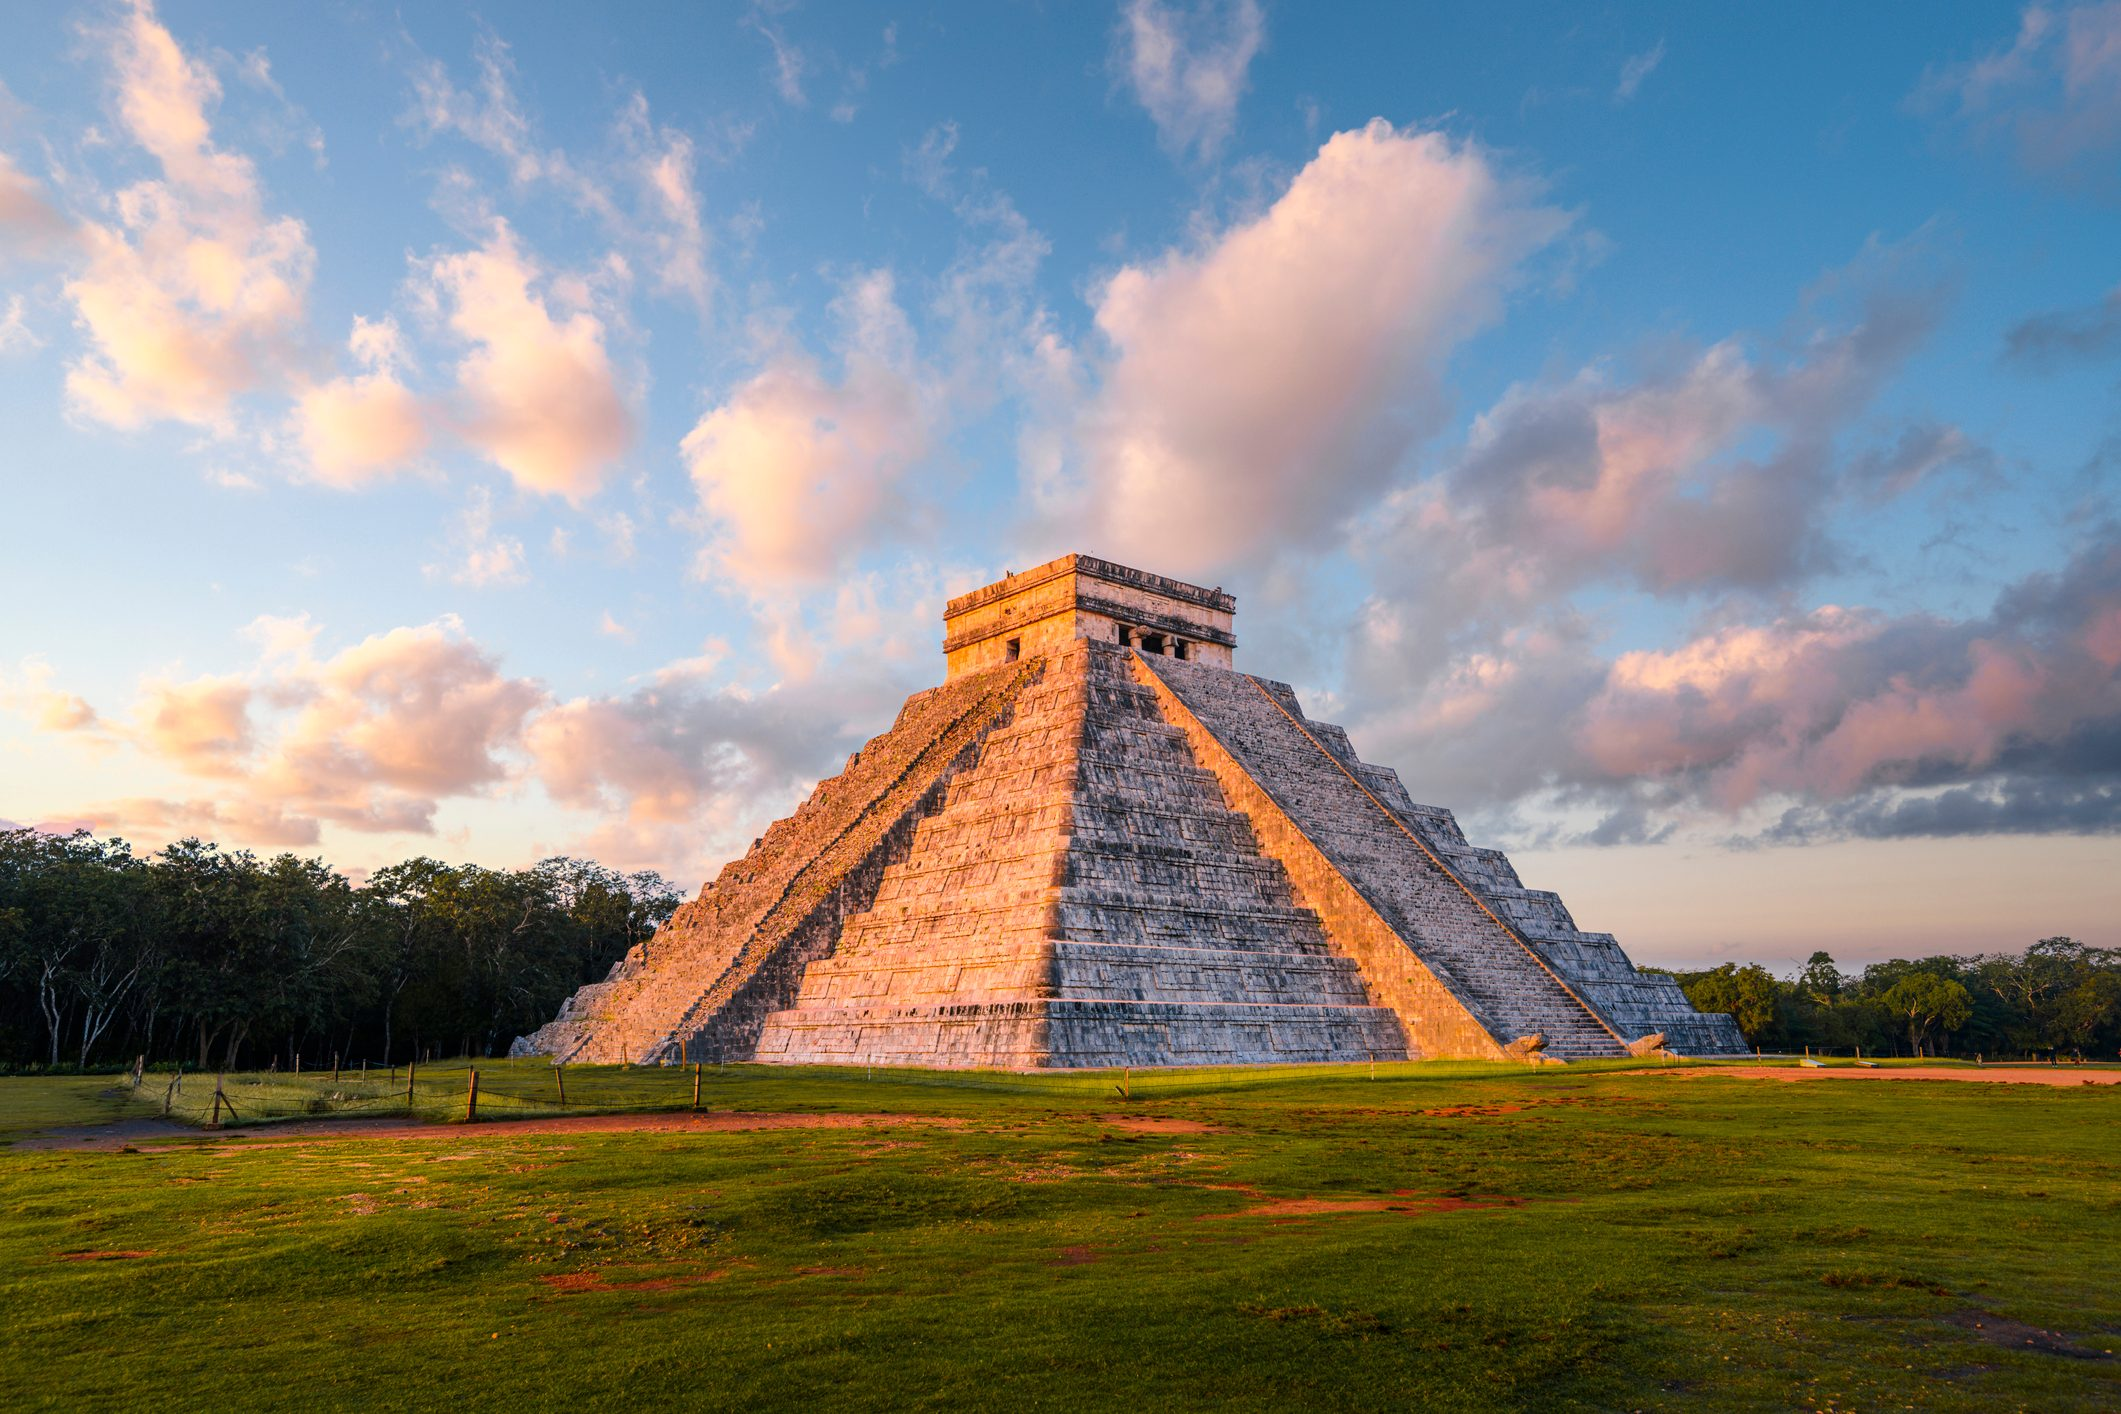 Kukulkan pyramid at Chichen-Itza archaeological site, Yucatan, Mexico